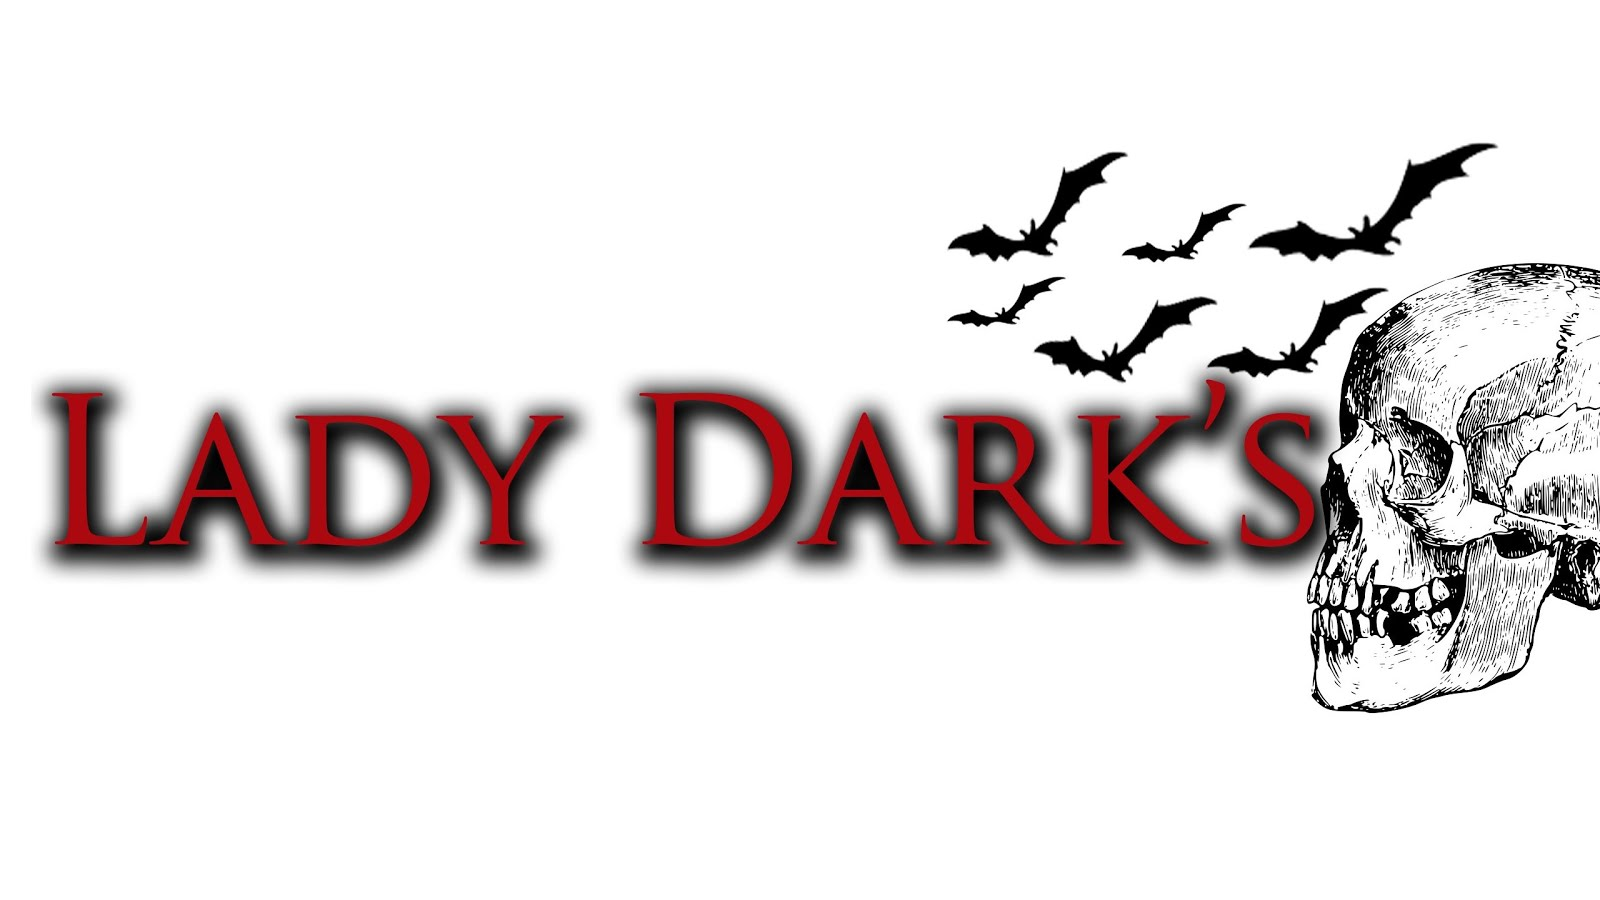 Lady Dark's blog